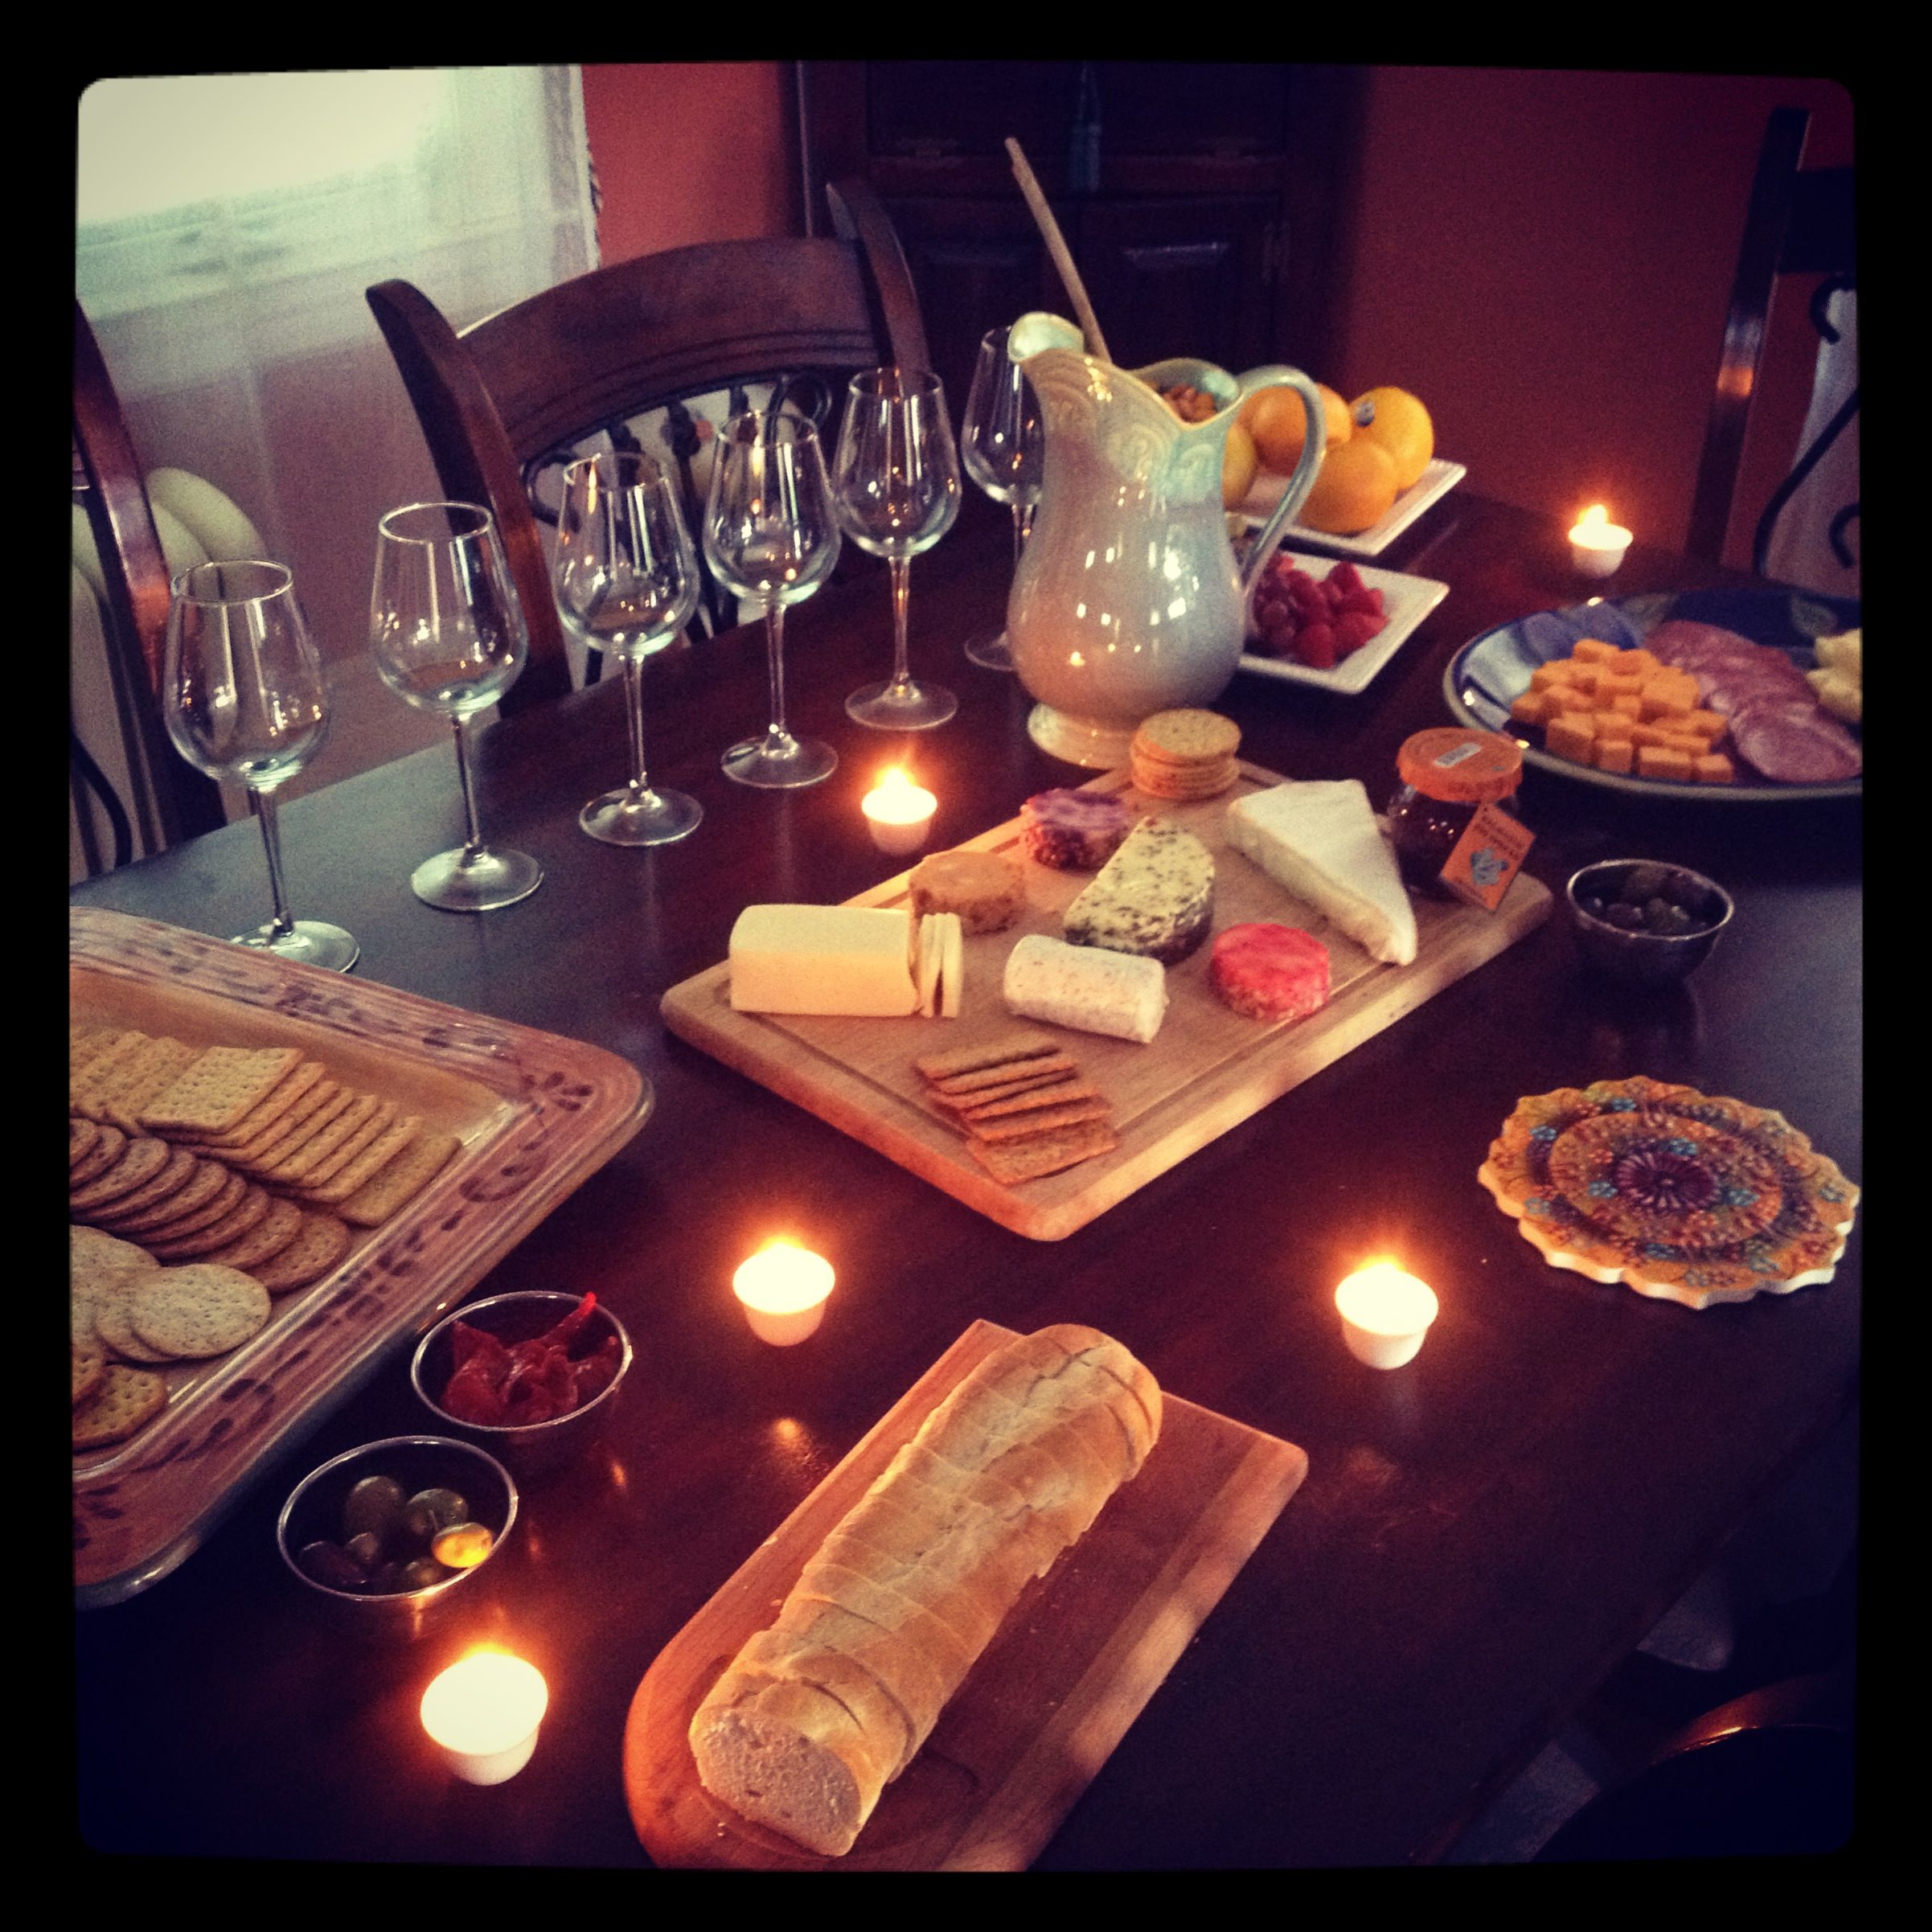 Pin By Elissa Candelaria On Get Togethers Wine And Cheese Party Wine Tasting Party Cheese And Wine Party